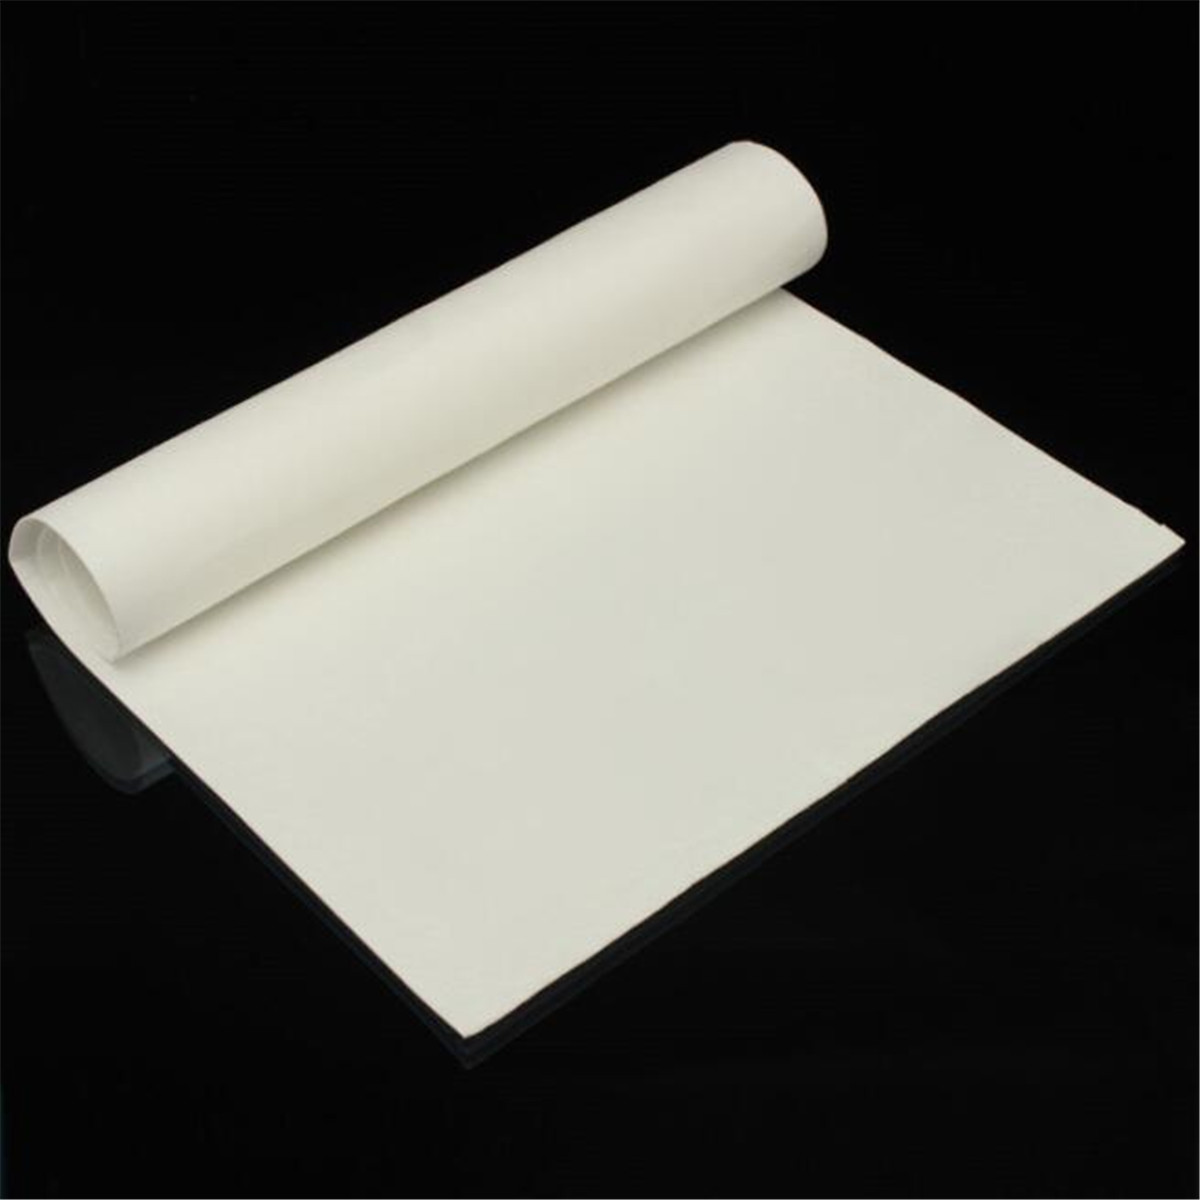 Ceramic Insulation Blanket Details About Ceramic Fiber Paper Insulation Blanket For Wood Stoves Inserts 30cmx61cm Sheet